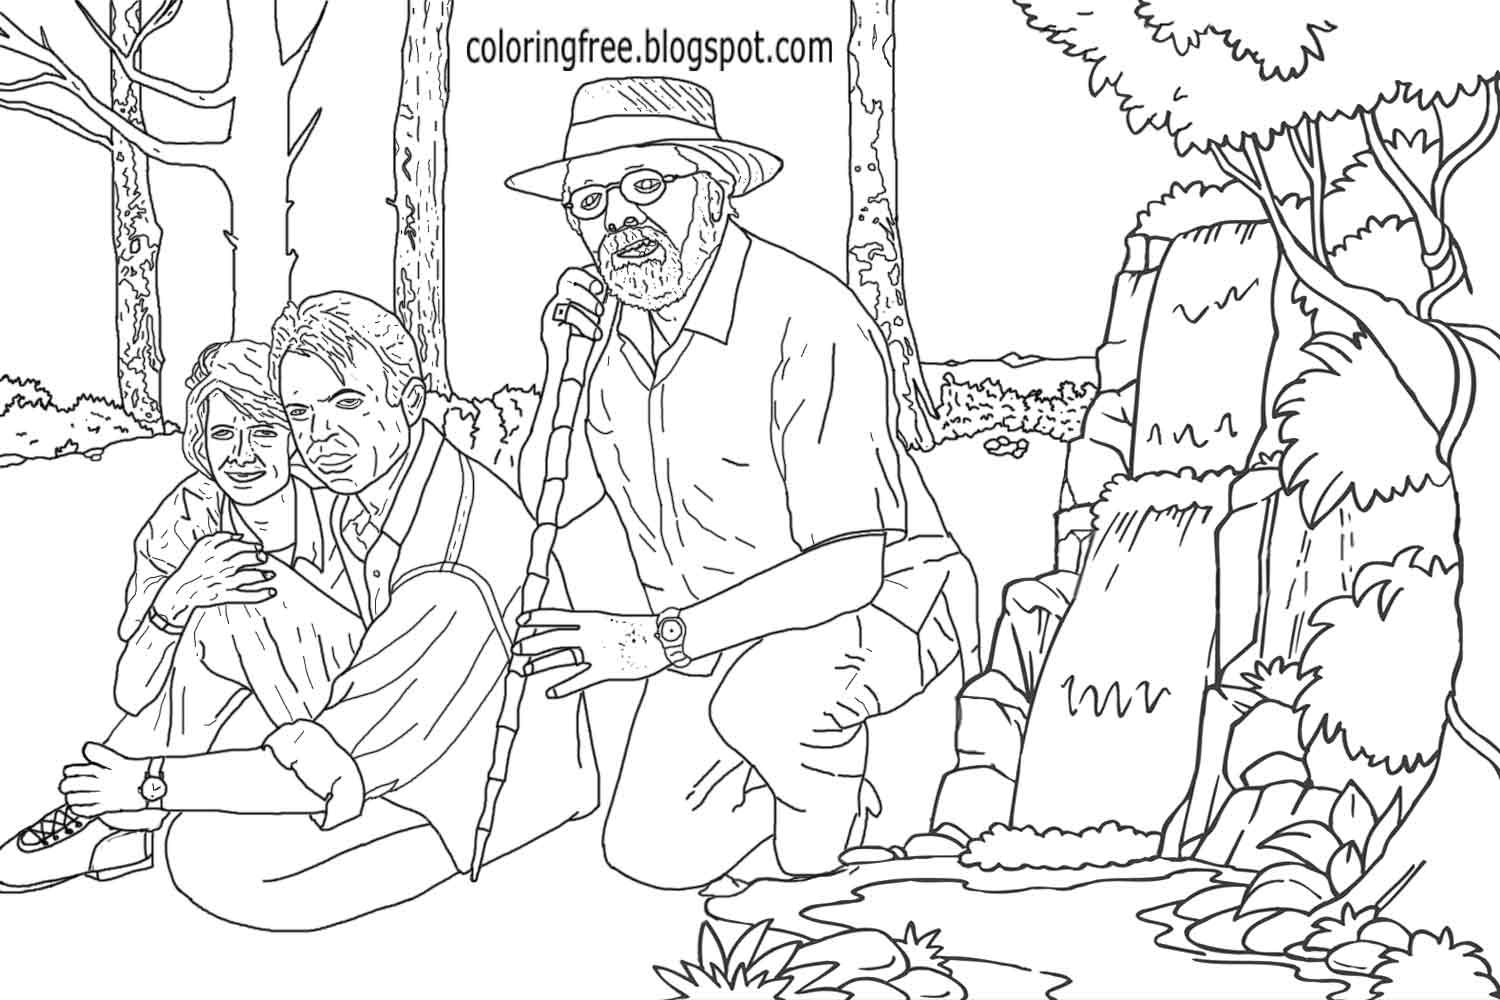 Printable Coloring Pages Dinosaurs Aecostnet bee coloring pictures